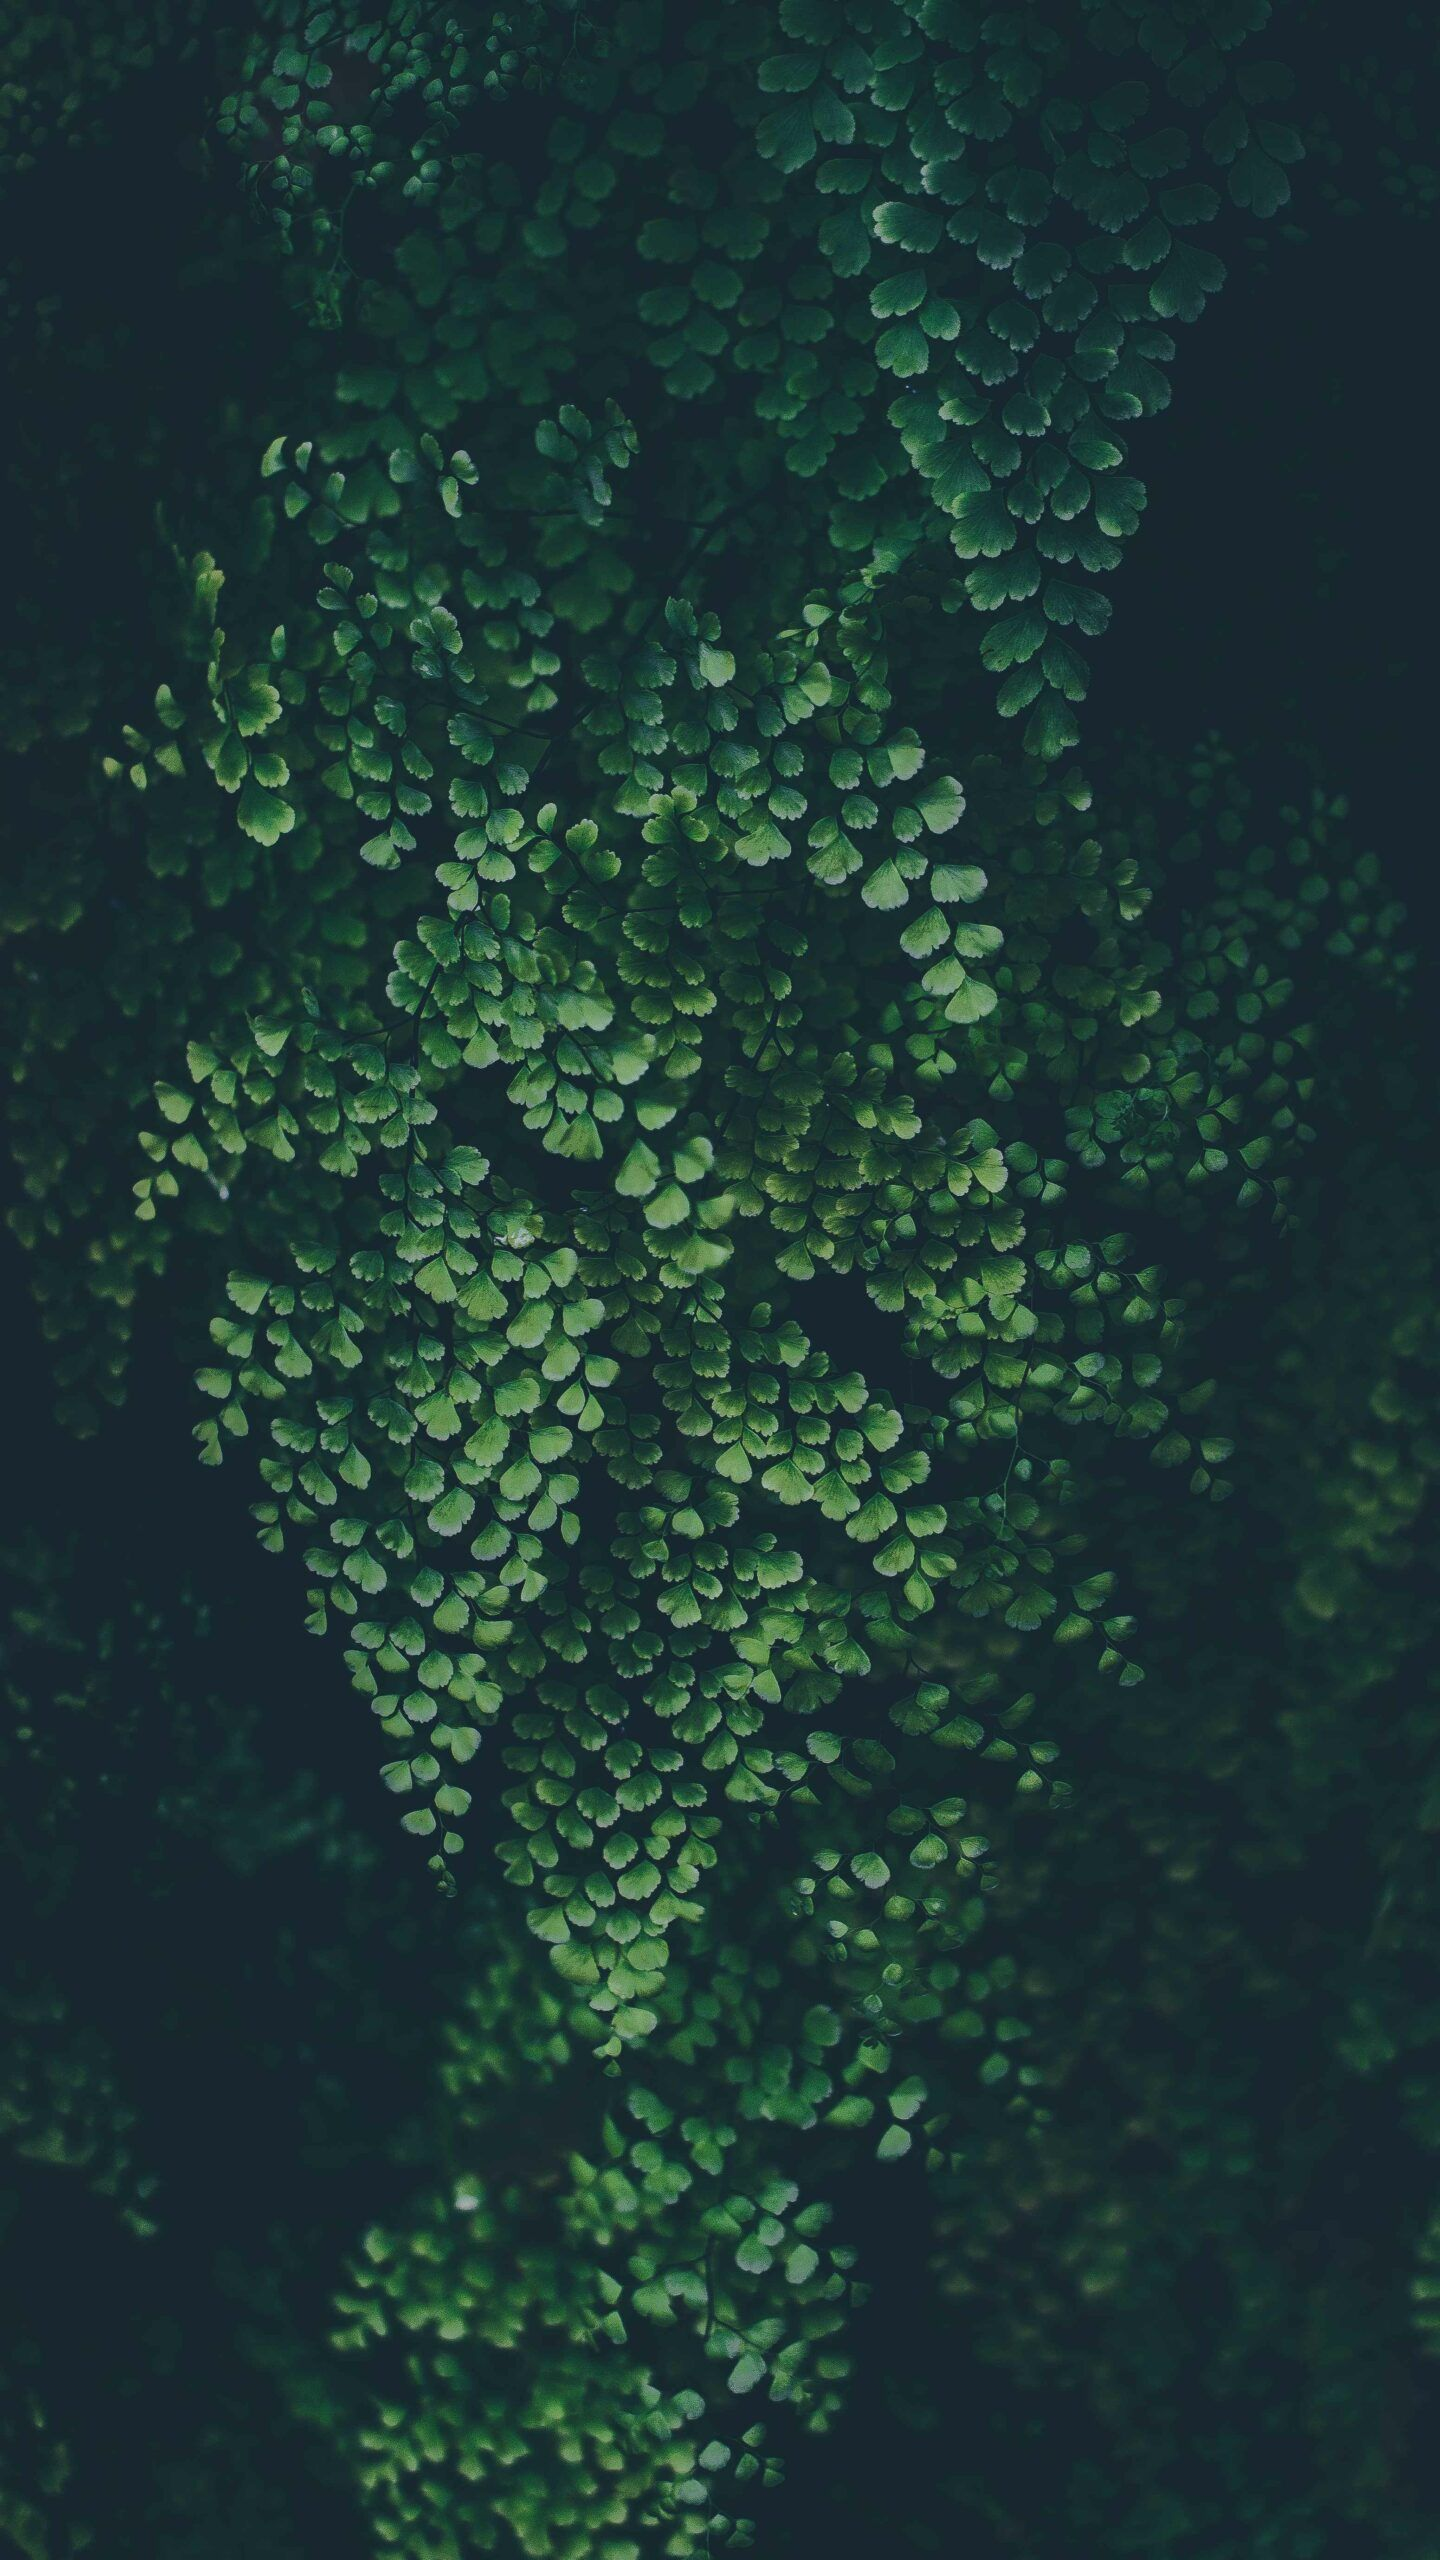 Mini Green Plants Iphone Wallpaper In 2020 Iphone Wallpaper Tropical Dark Green Aesthetic Green Aesthetic